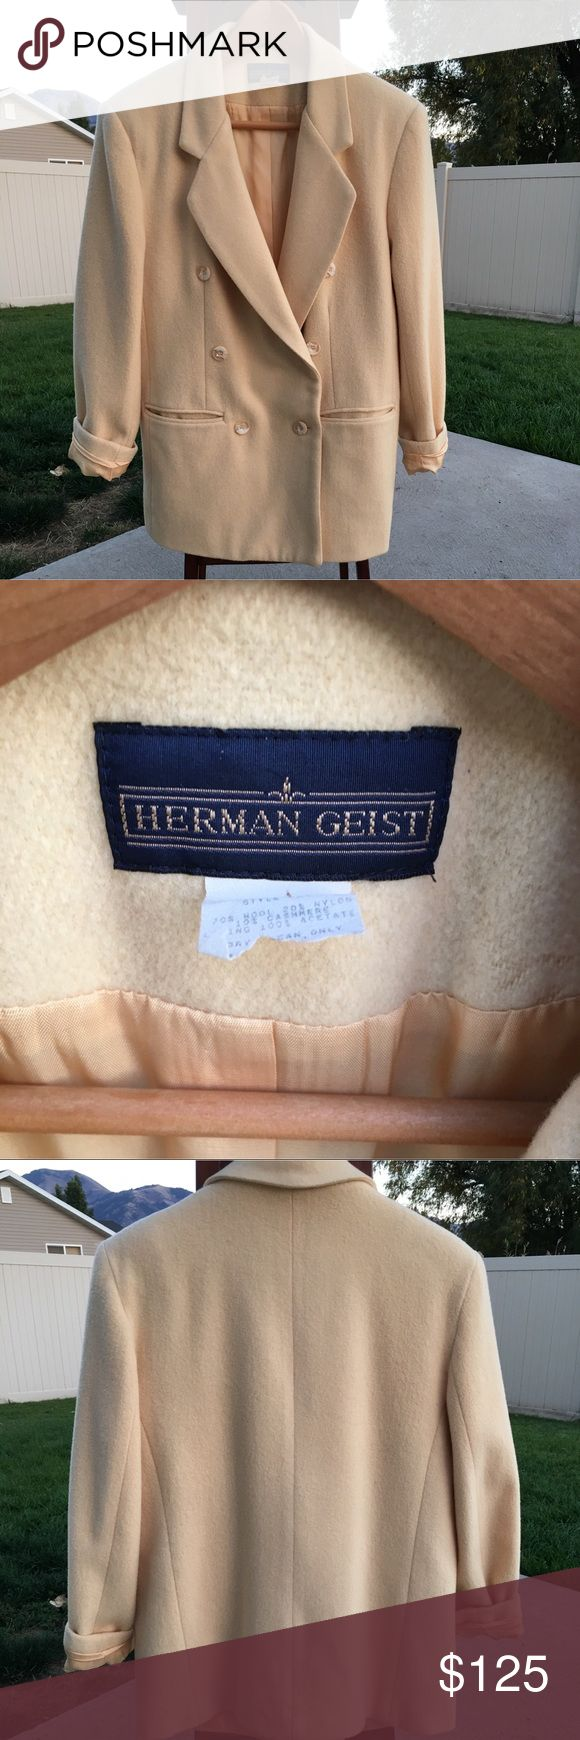 HERMAN GEIST - VINTAGE 1980s Jacket 1980's Herman Geist Blazer style jacket. It is 70% wool, 10% Mohair, 20% nylon. The jacket is in good condition with a few unnoticeable marks on the back near the bottom, price reflects that. This beautiful cream jacket is in just in time for the cold. Tag has been ripped with the size, but it is between a 6-8. PLEASE ask questions if you have them, I'm more than willing to take more pictures and measurements ❤️️❤️️ Herman Geist  Jackets & Coats